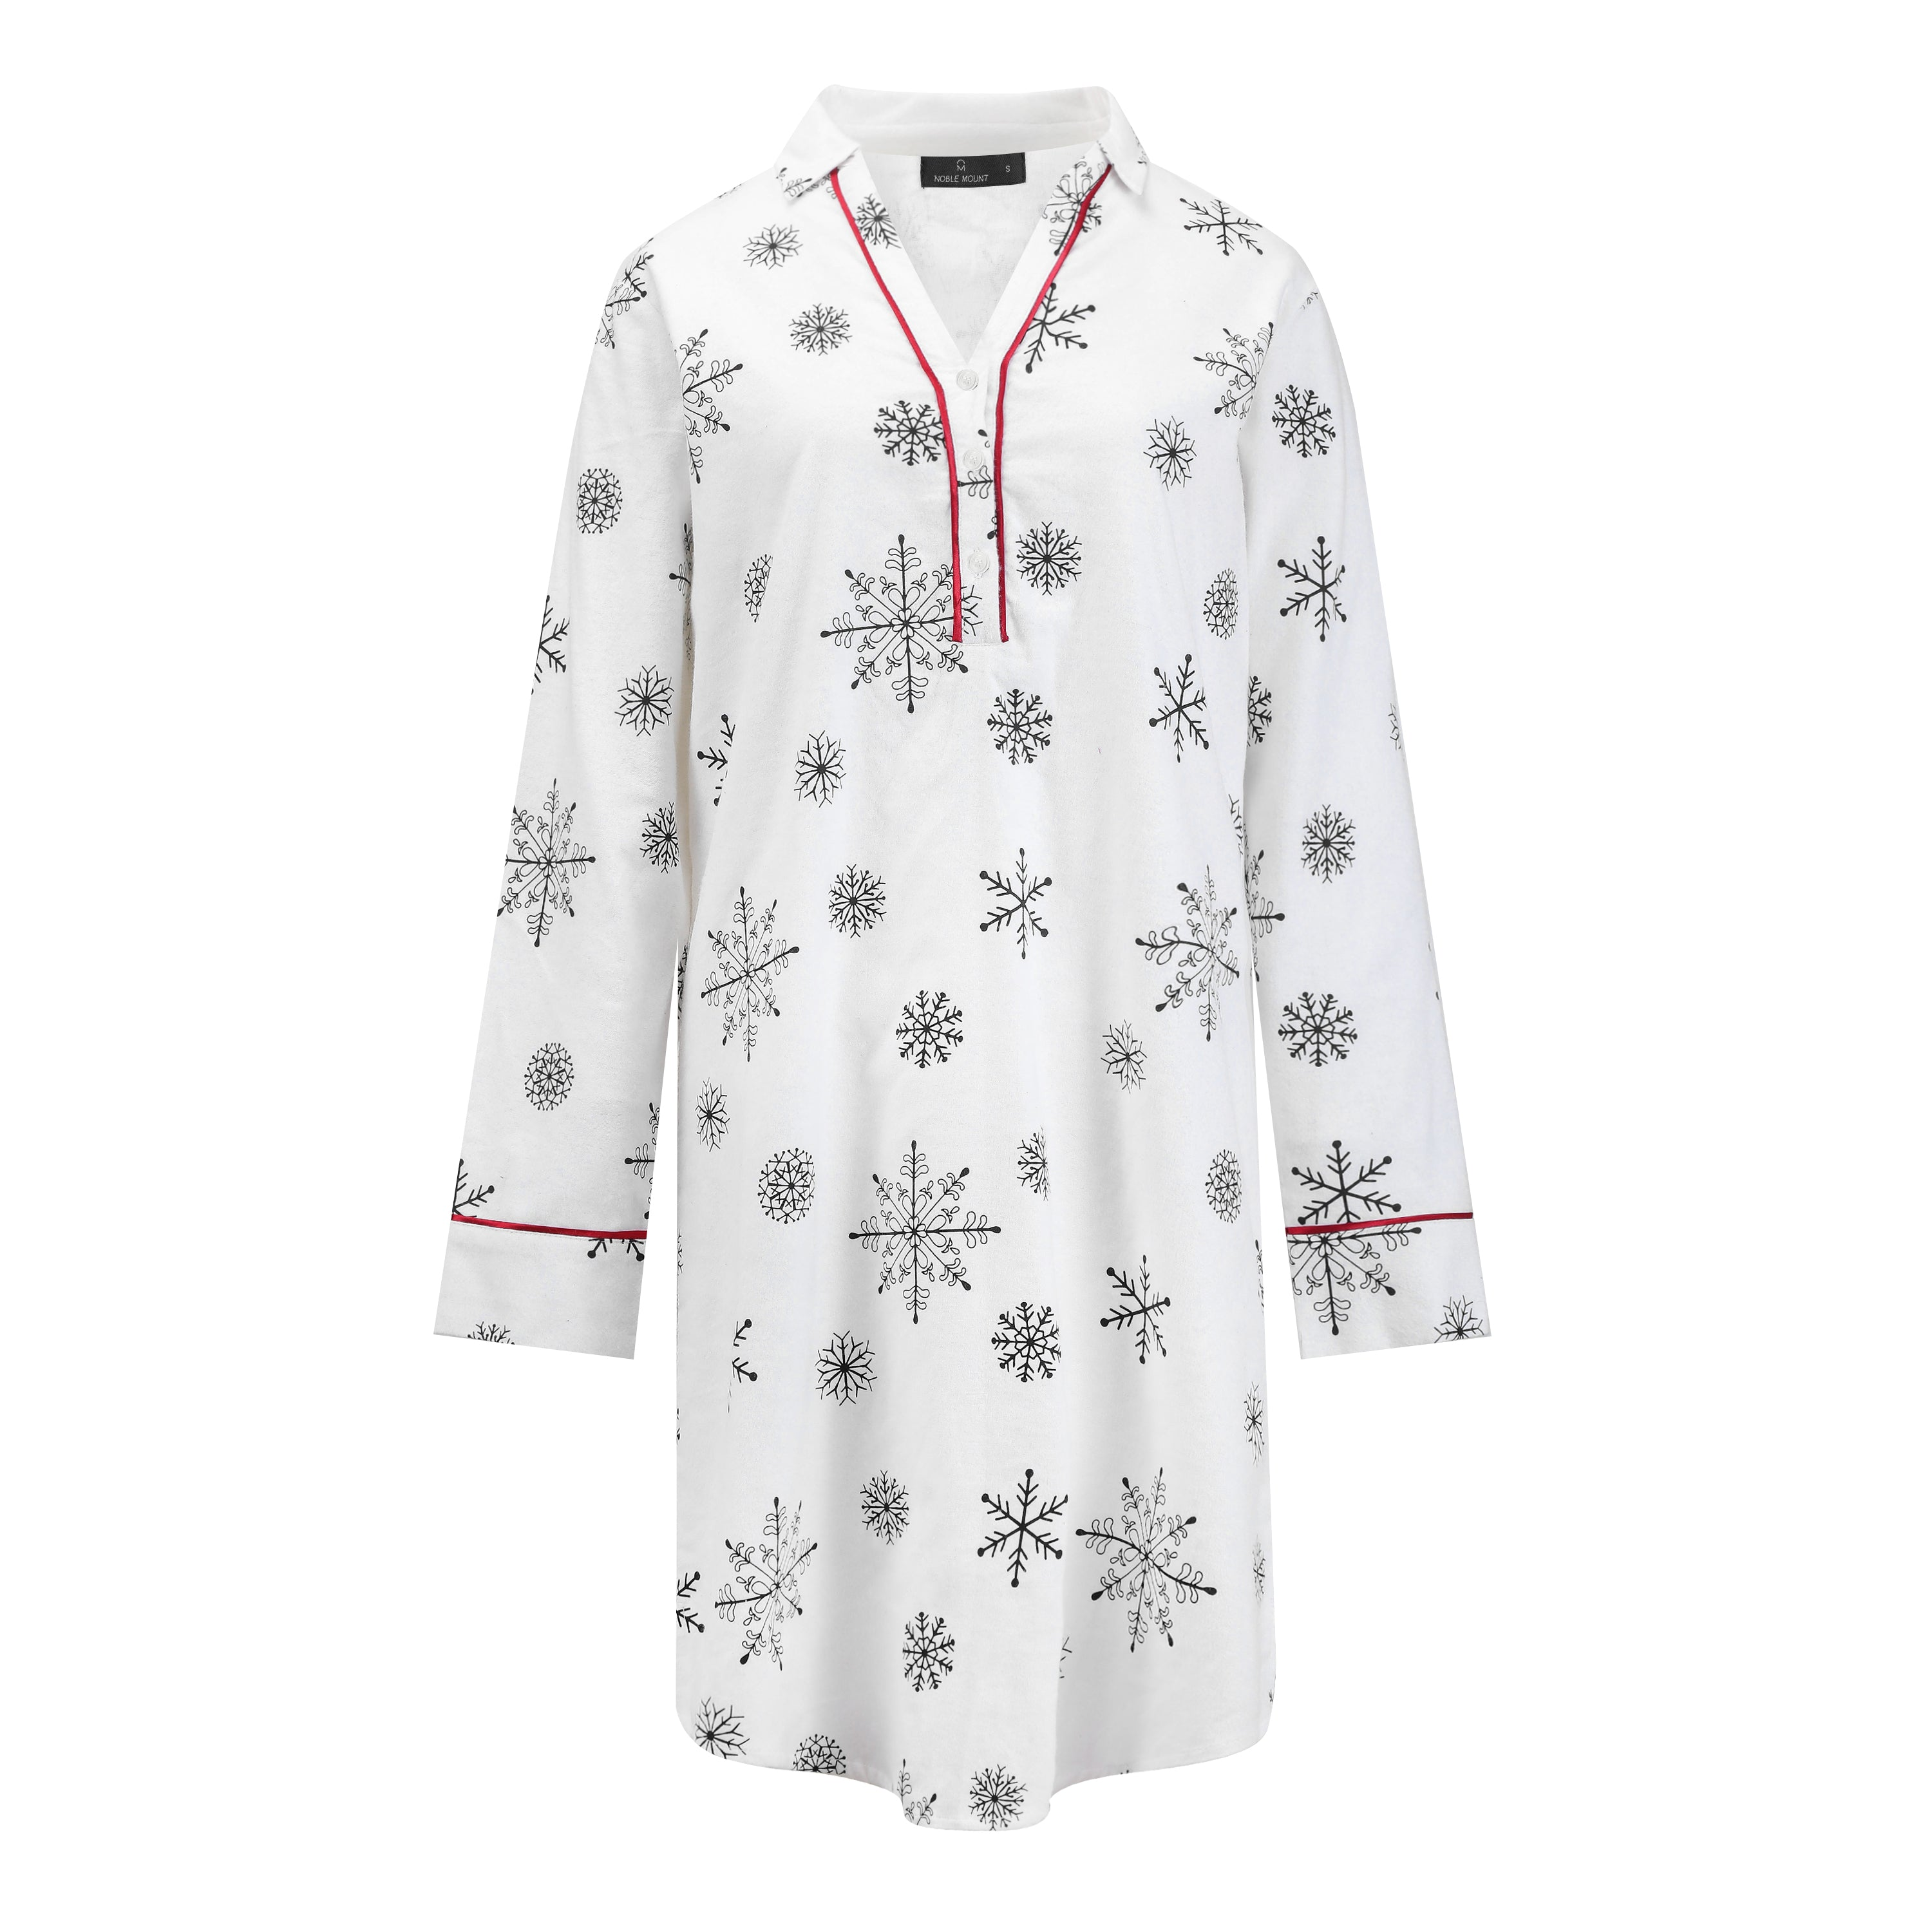 Noble Mount Womens Premium 100% Cotton Flannel Long Sleeve Sleep Shirt - Snowfall White-Gray